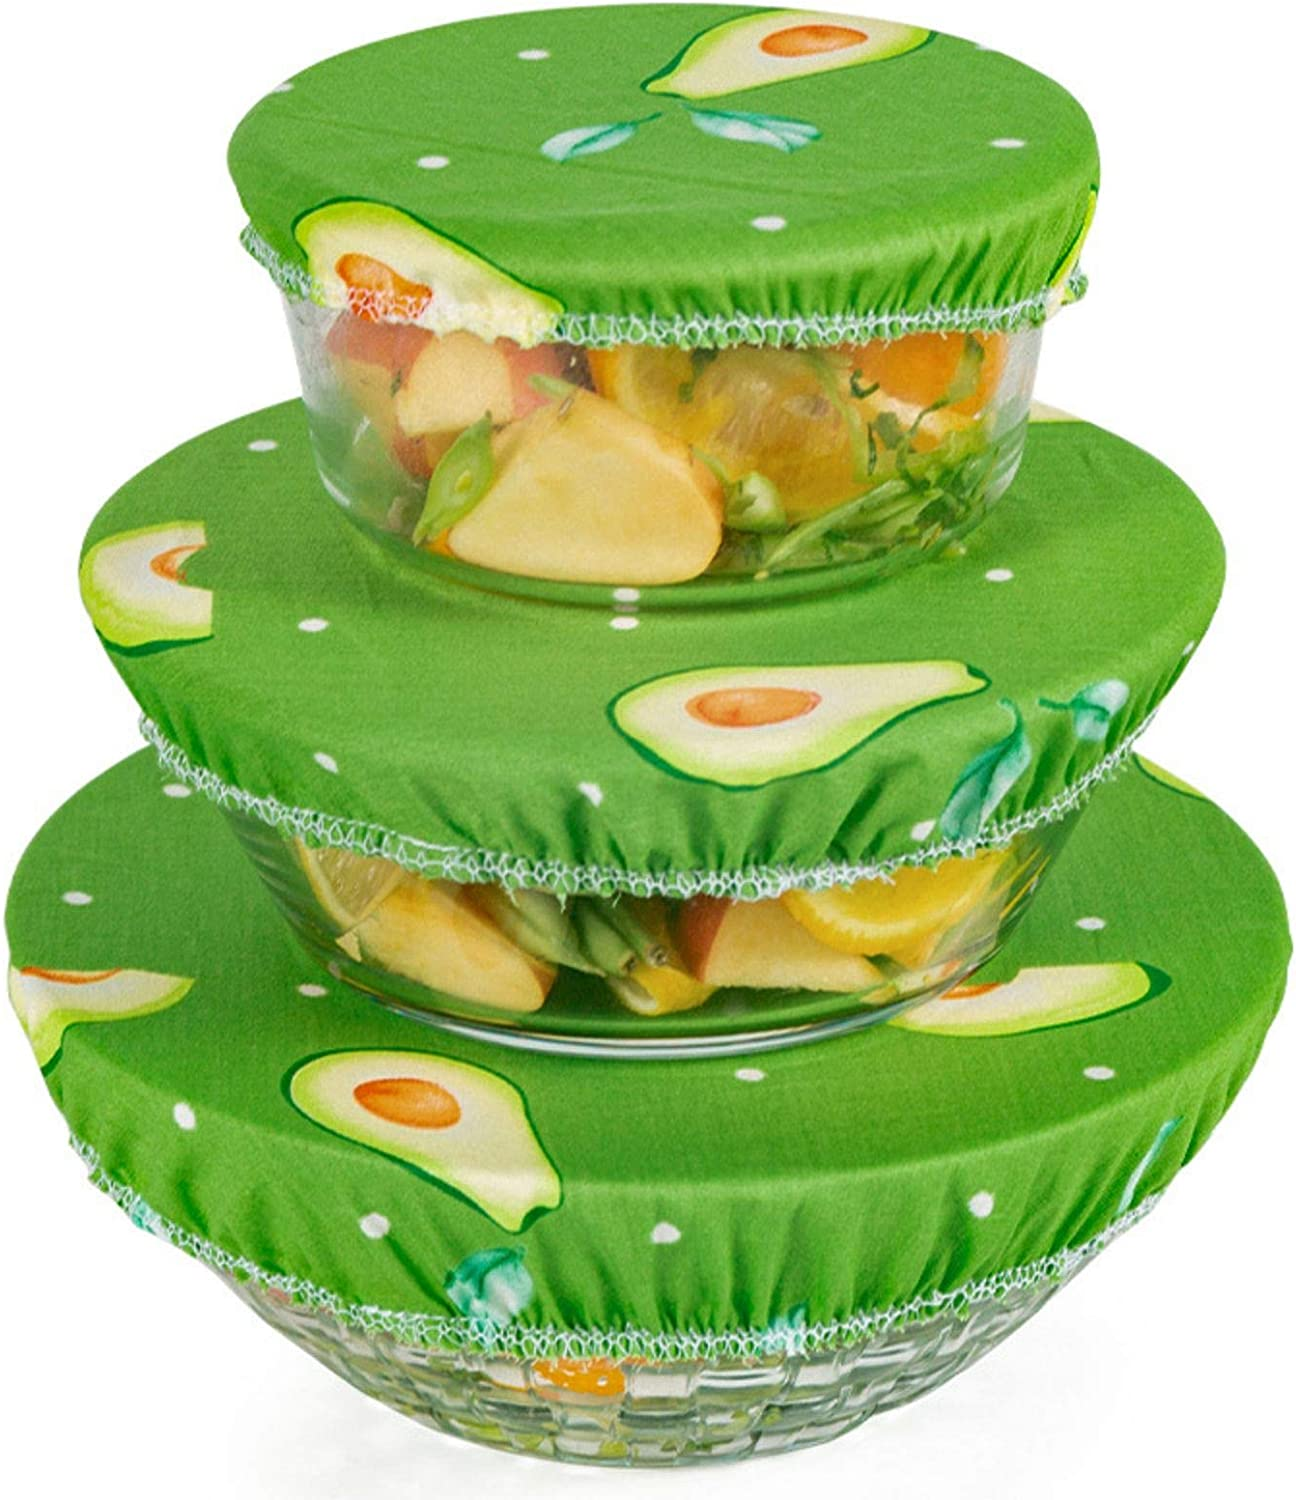 3Pcs Reusable Bowl Covers, Press and Seal Wrap, Stretch and Fresh Containers, Food Covers for Outside, Fresh Keeping Bowl Cover, Bowl Cover to Prevent Dust from Falling Into the Bowl